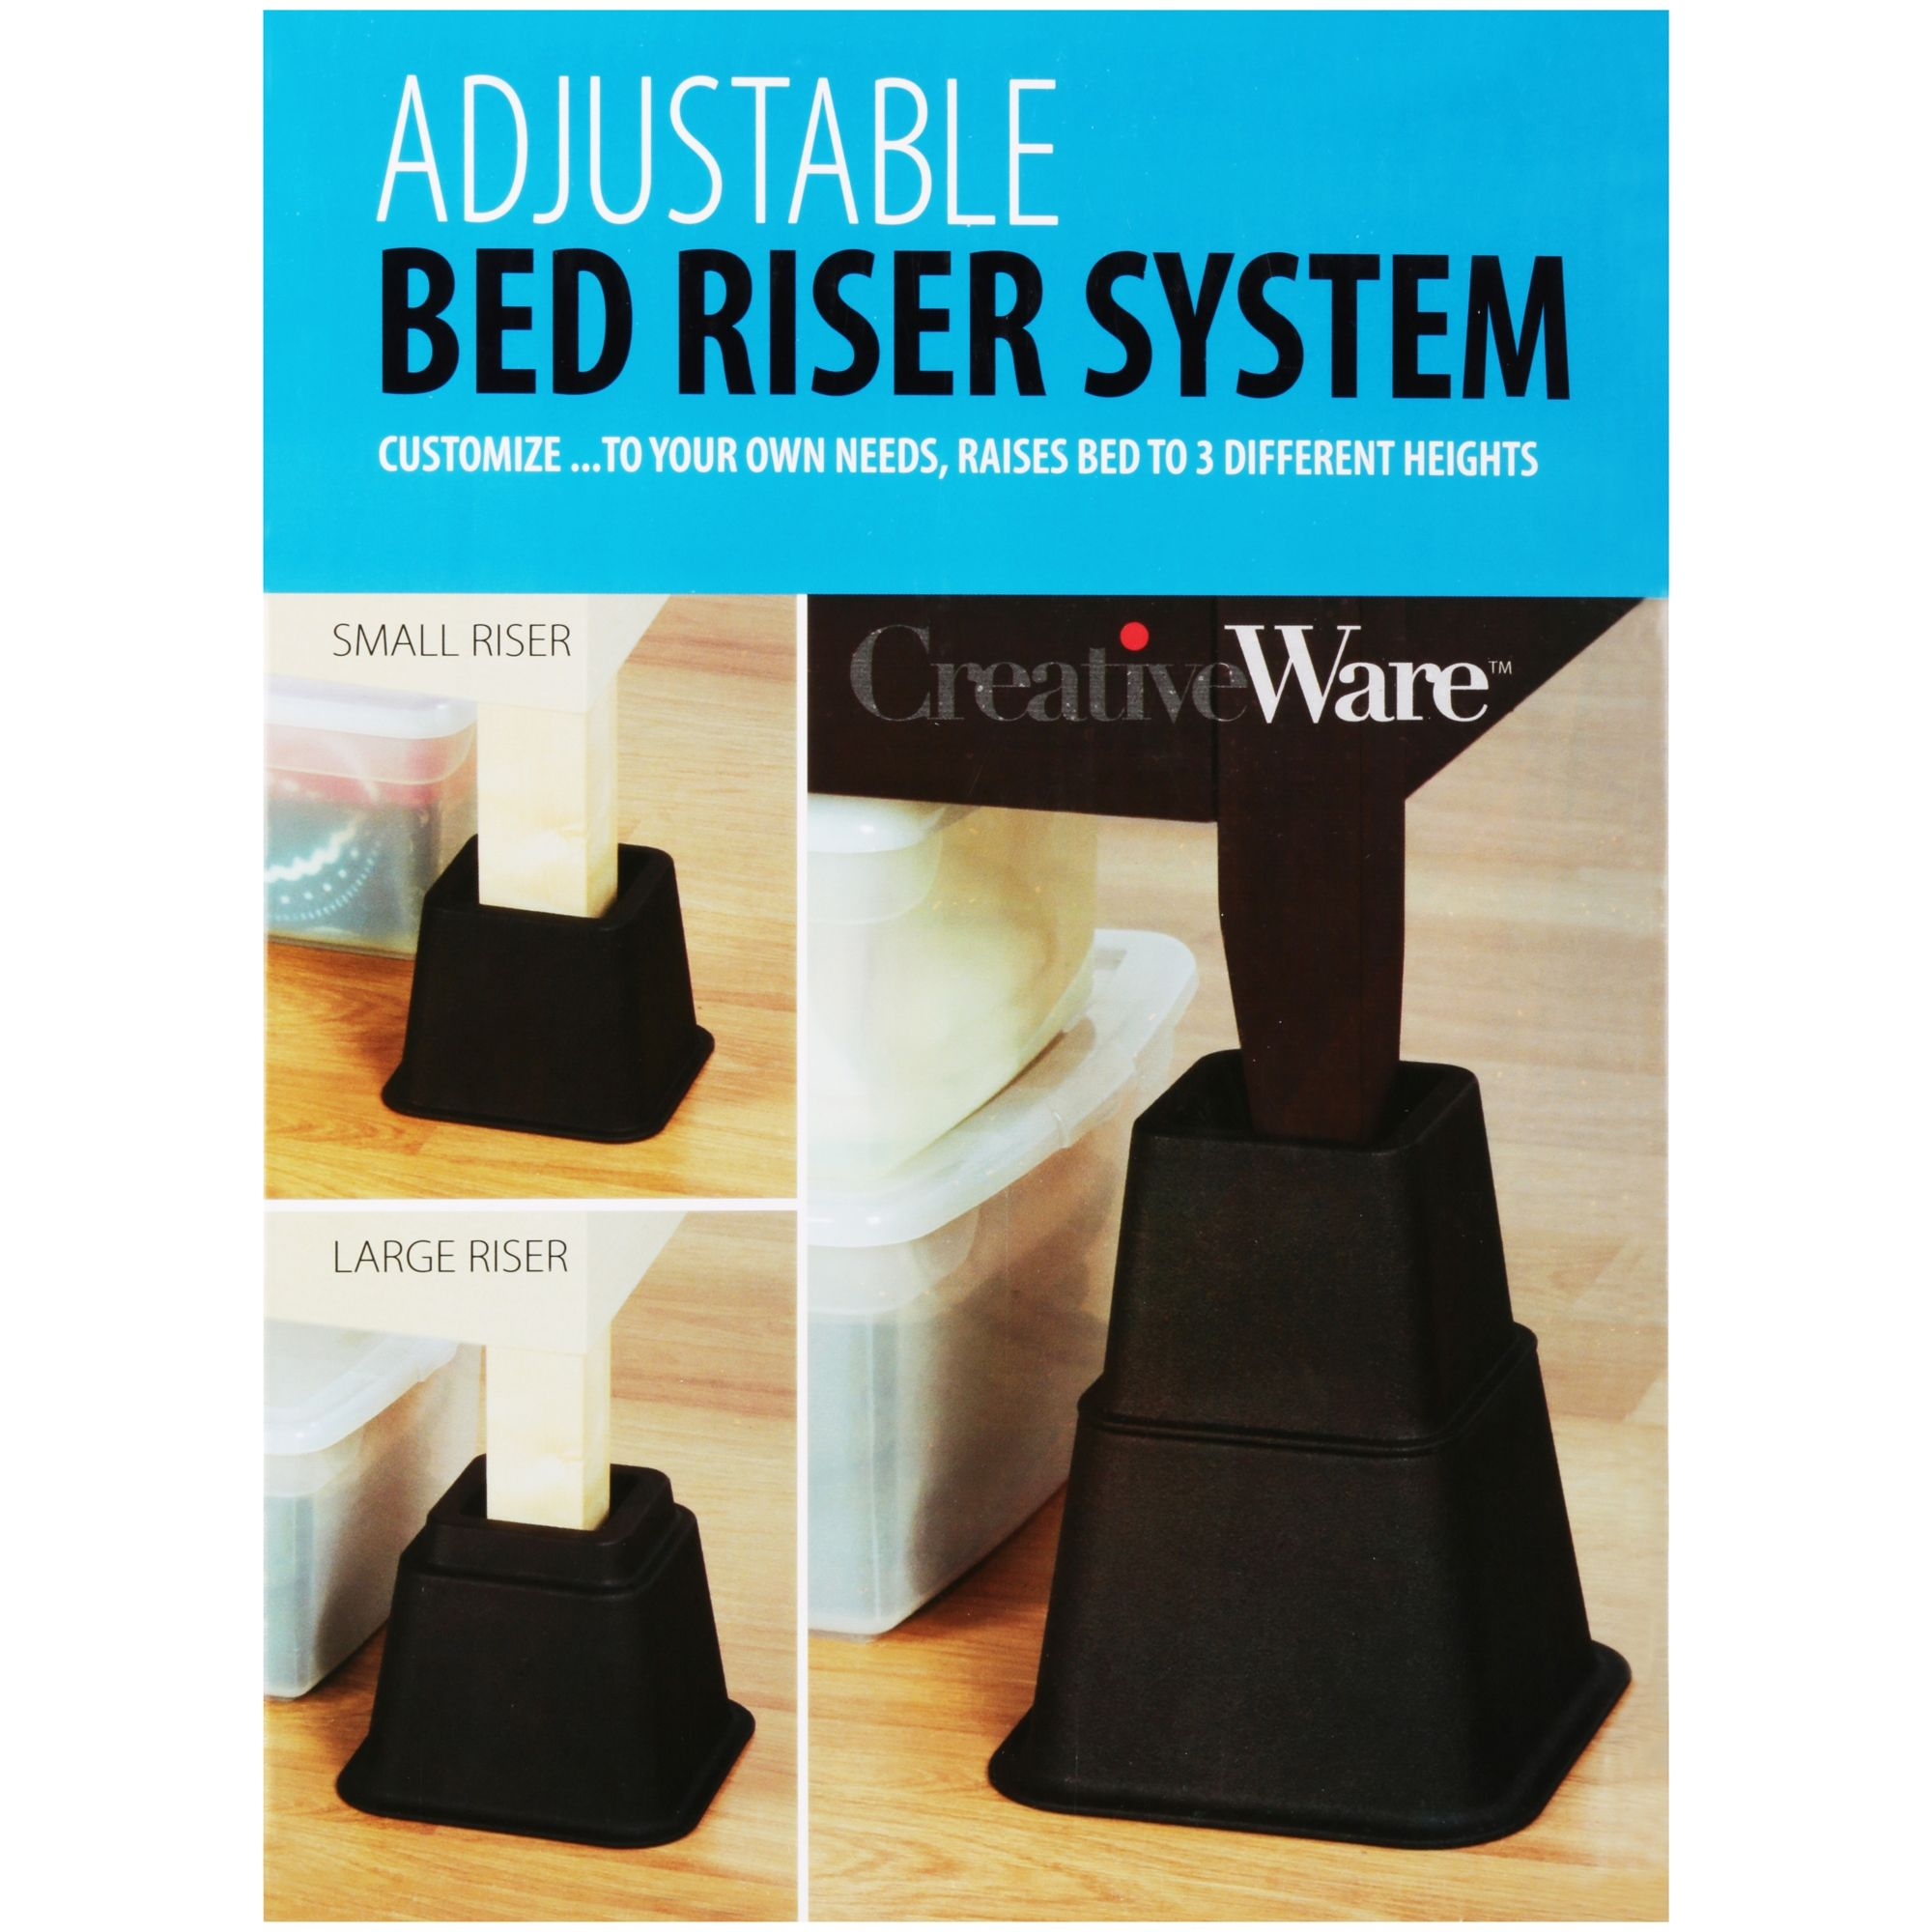 Home Adjustable Bed Risers Bed Risers Adjustable Beds